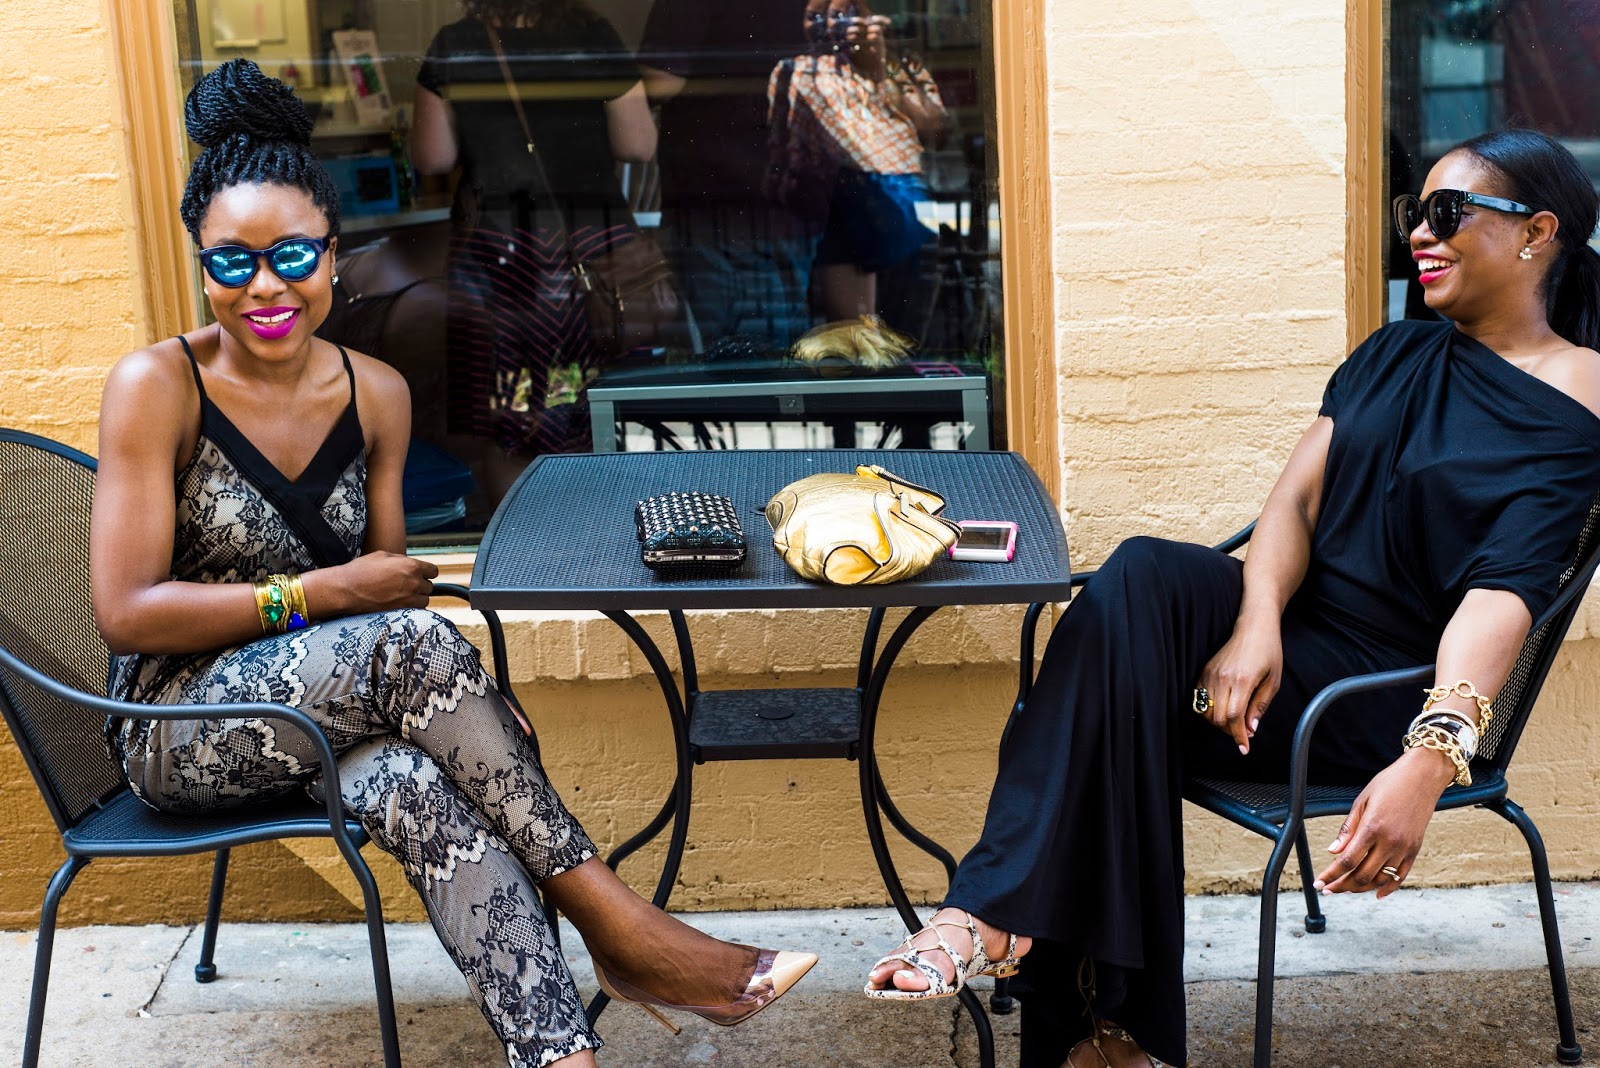 Fashion collaboration: Awed by Monica & Titi's Passion